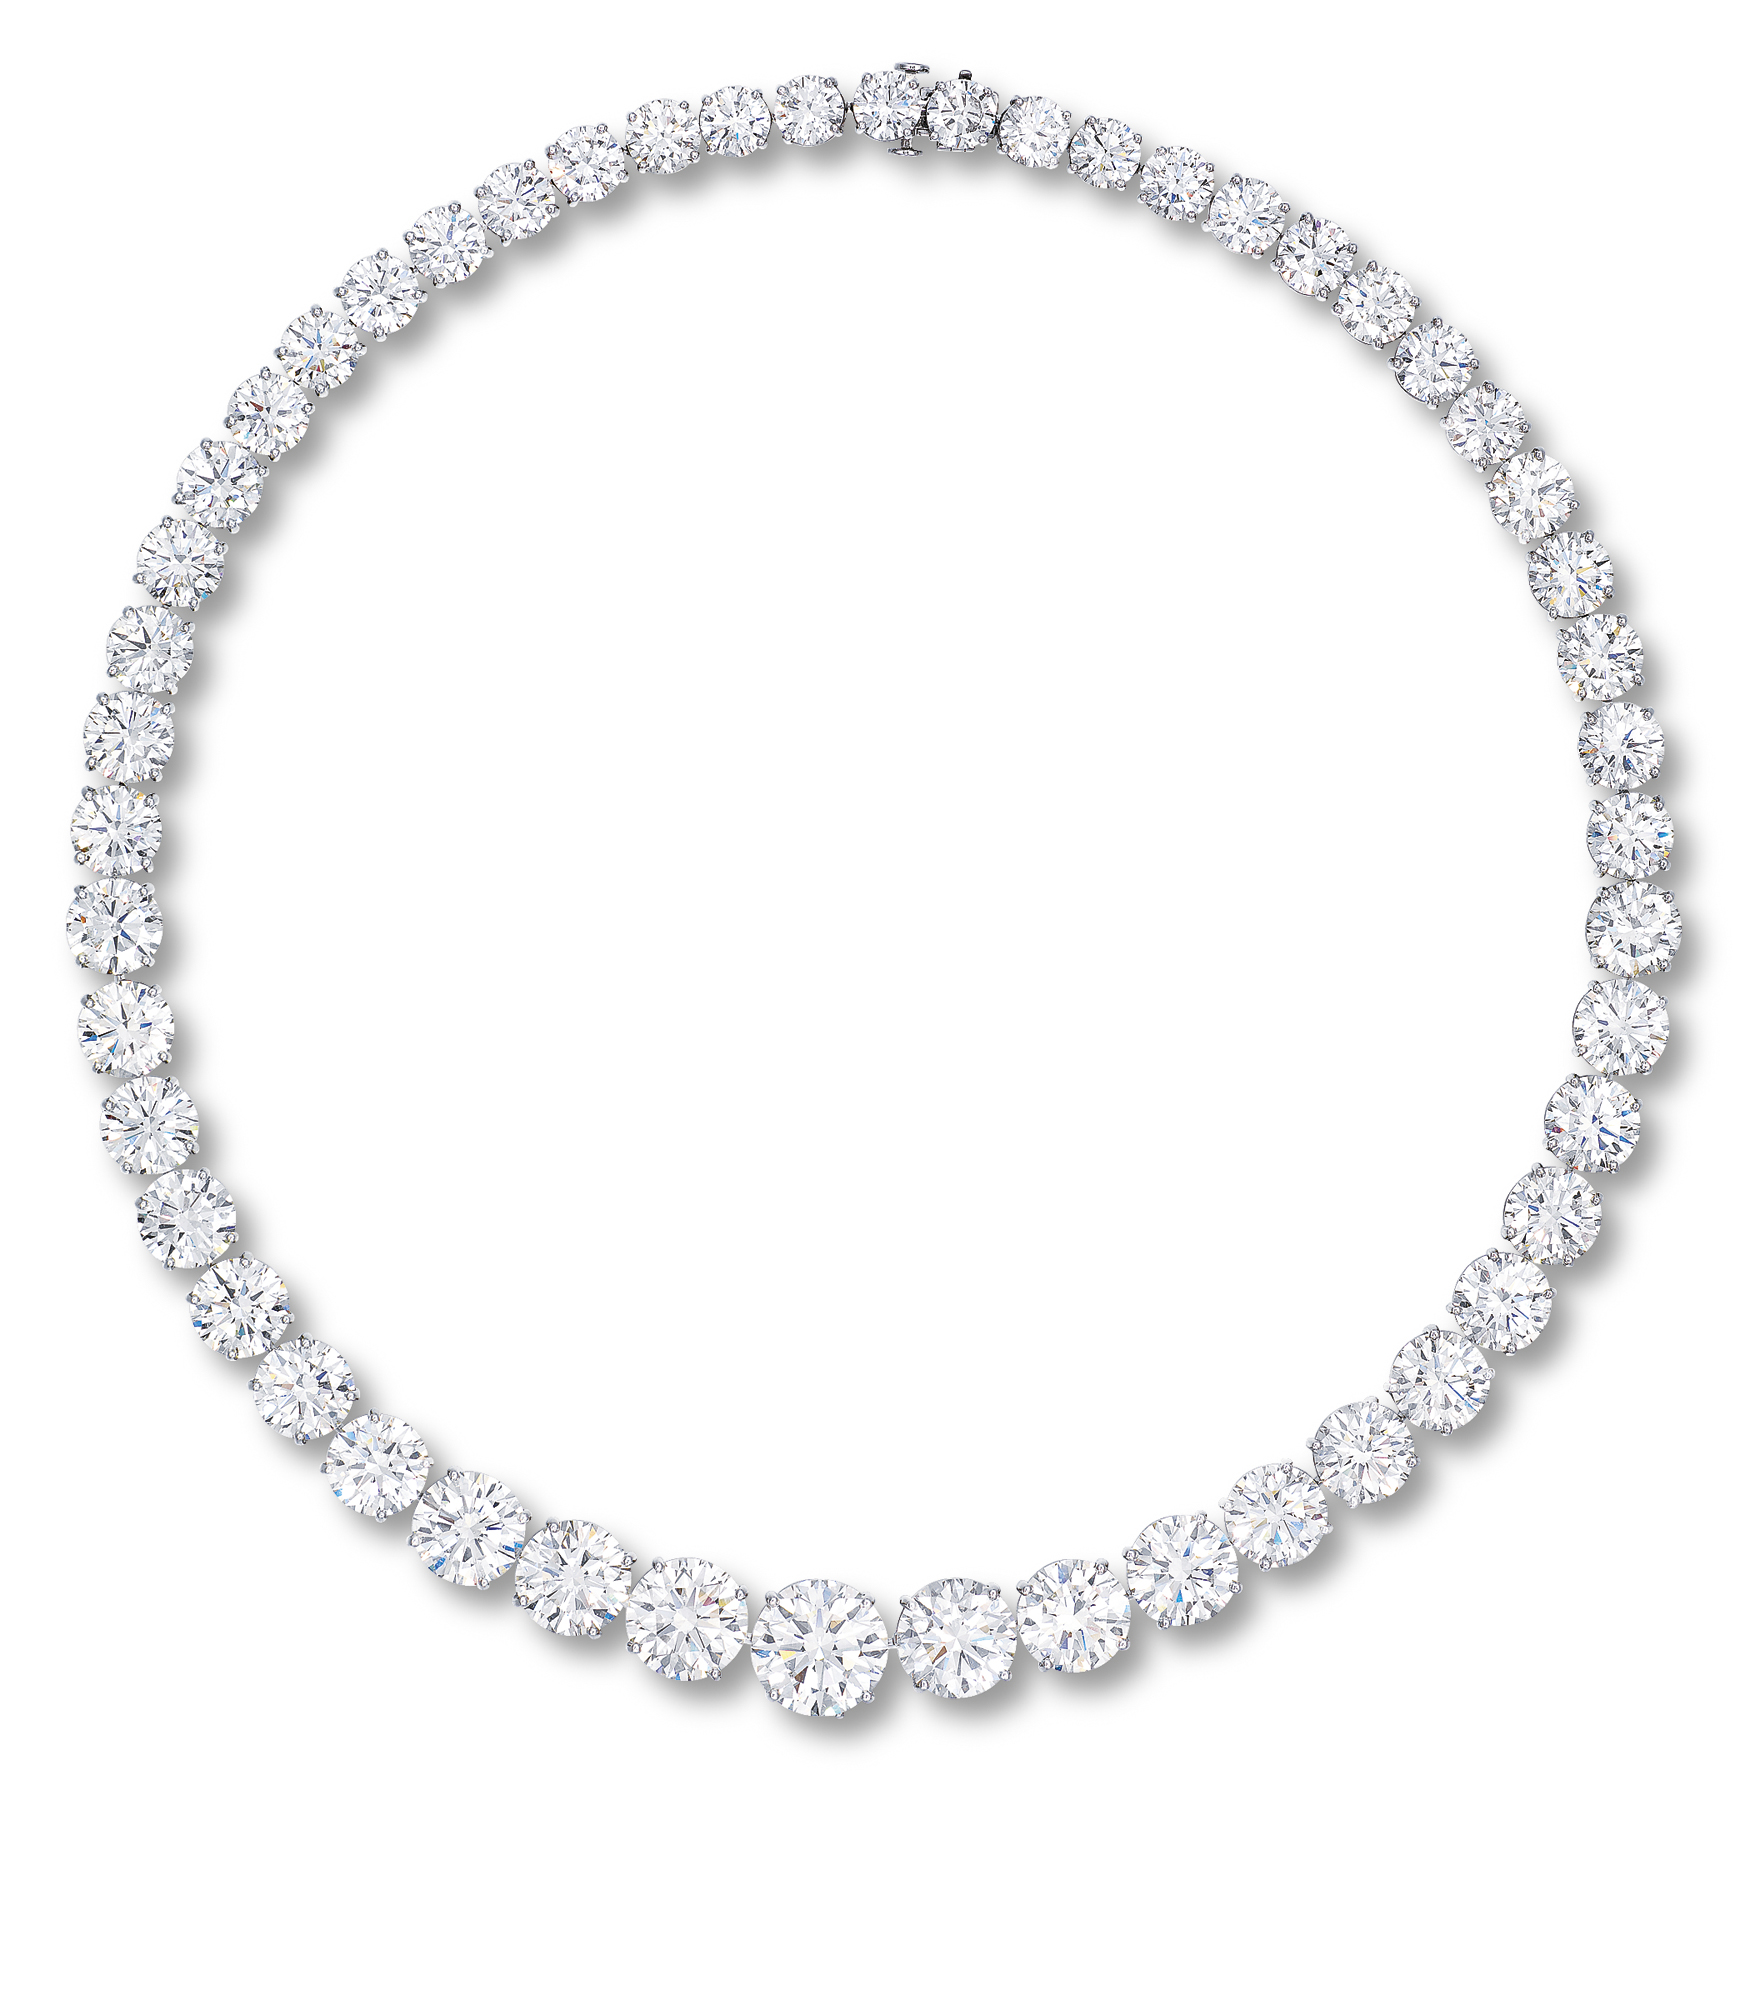 A DIAMOND NECKLACE, BY WILLIAM GOLDBERG